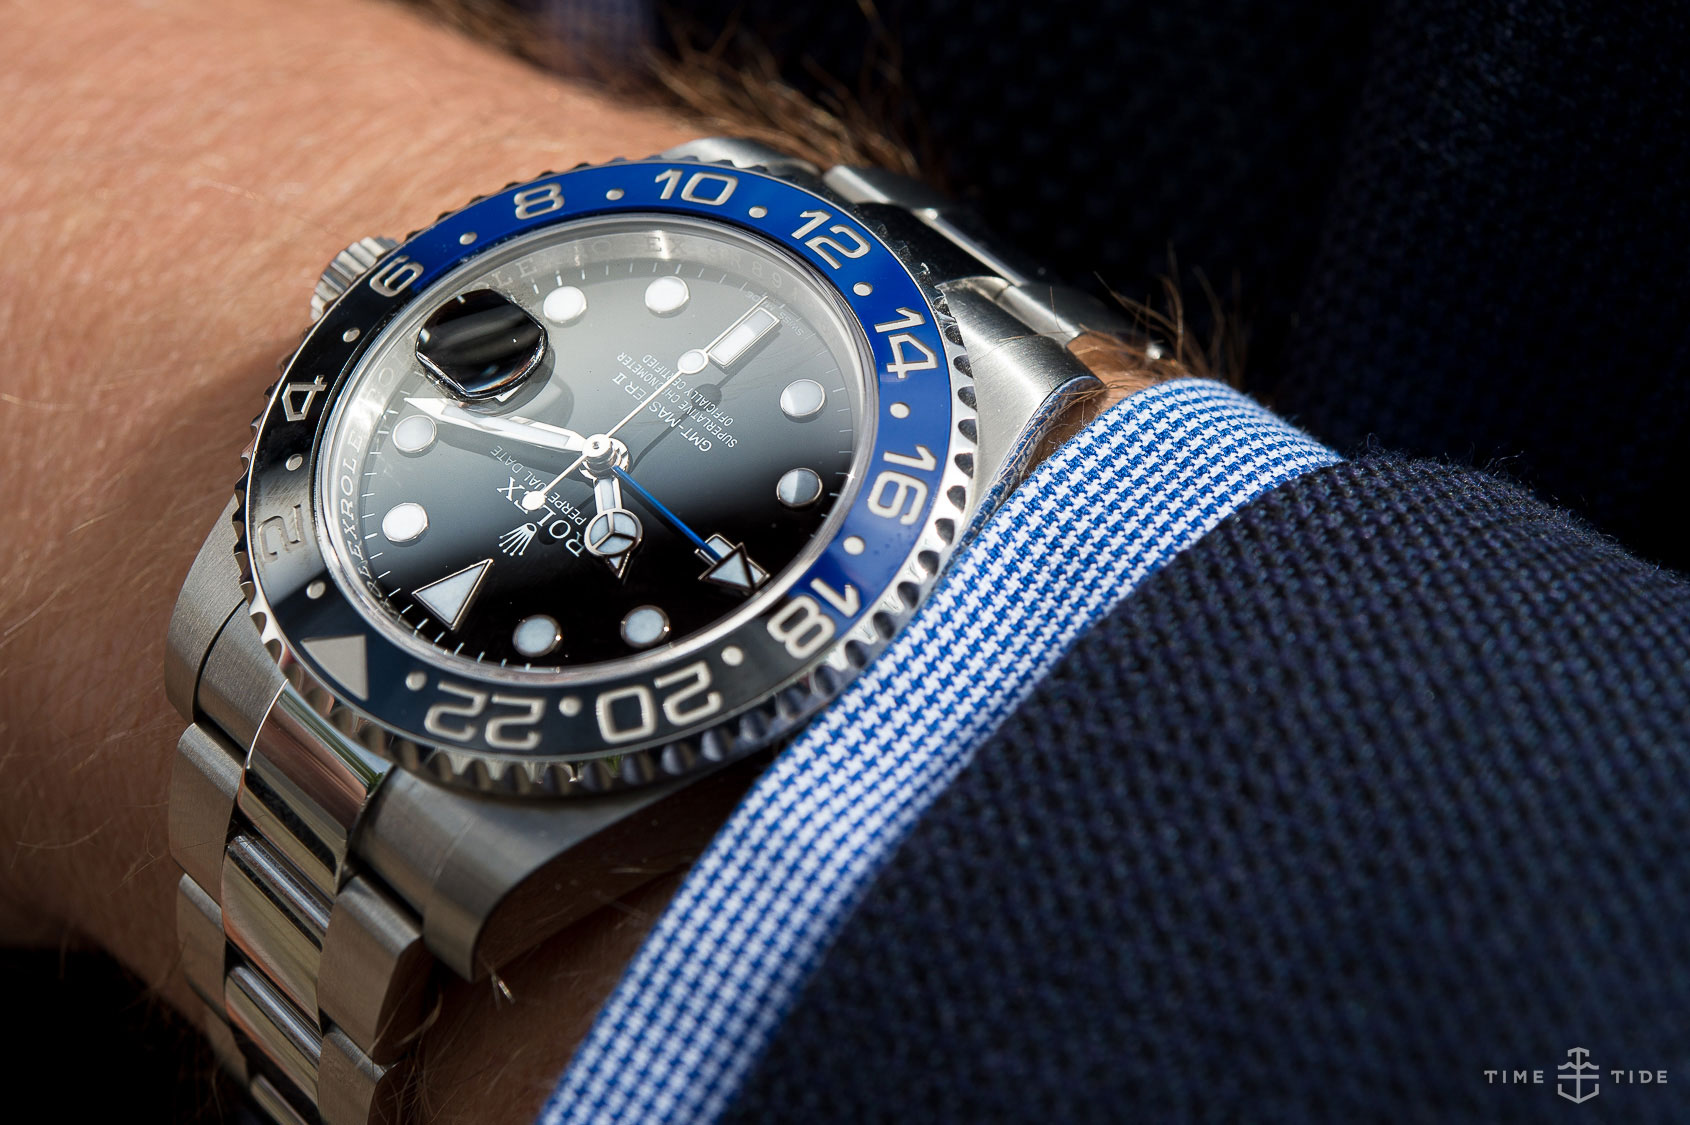 Rolex Gmt Master Ii Blnr In Depth Review